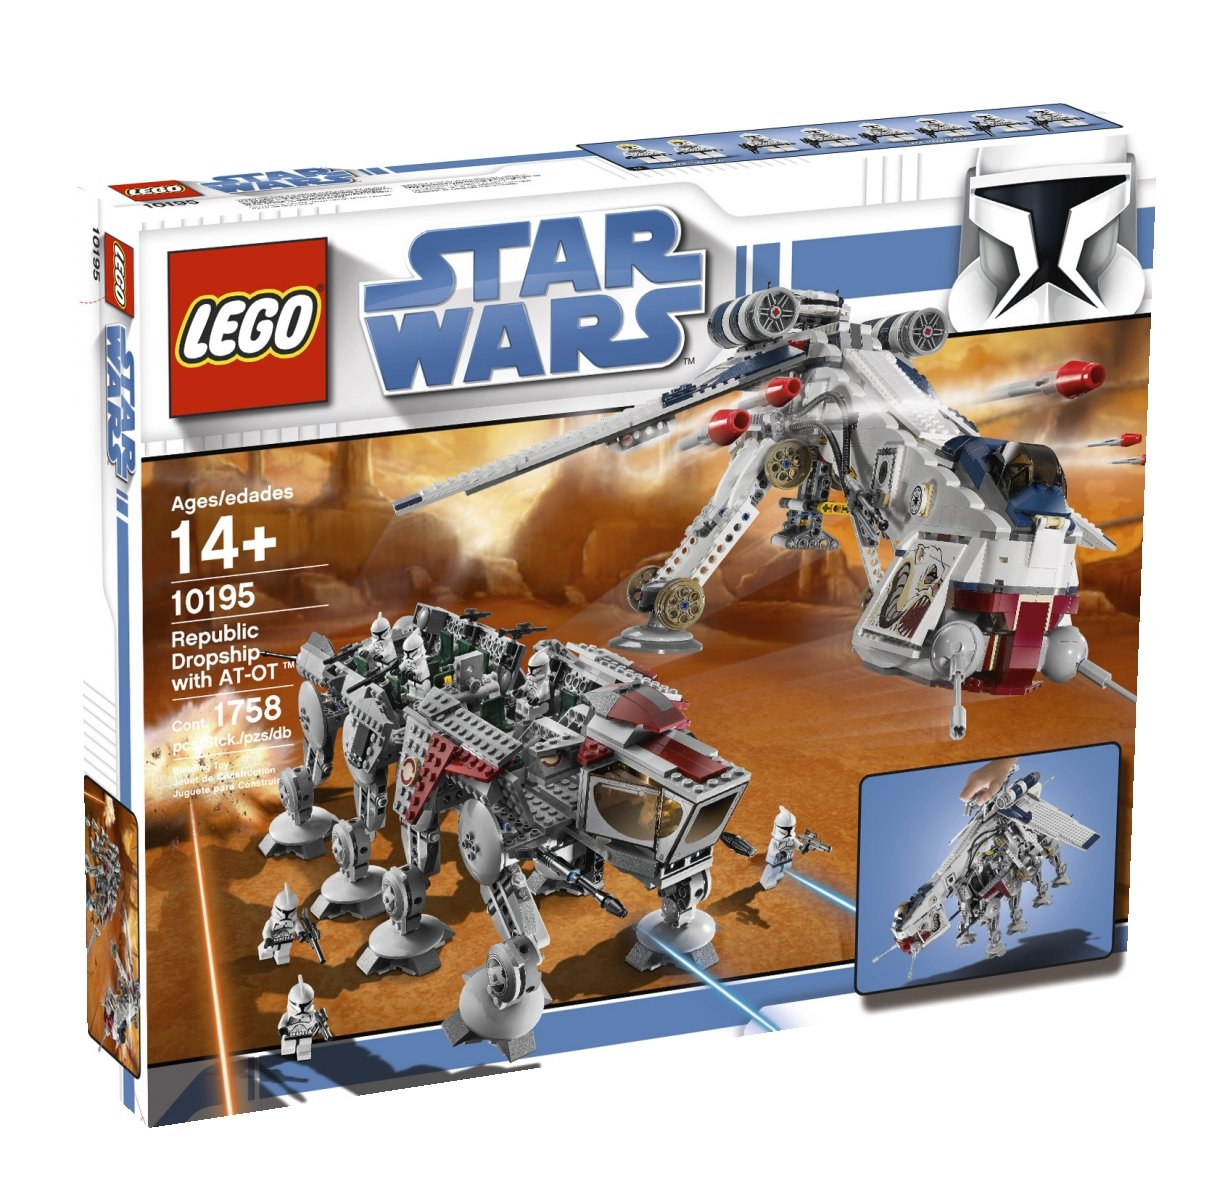 Amazon.com  LEGO Star Wars Republic Dropship with AT-OT Walker (10195)  (Discontinued by manufacturer)  Toys   Games f101582ddb